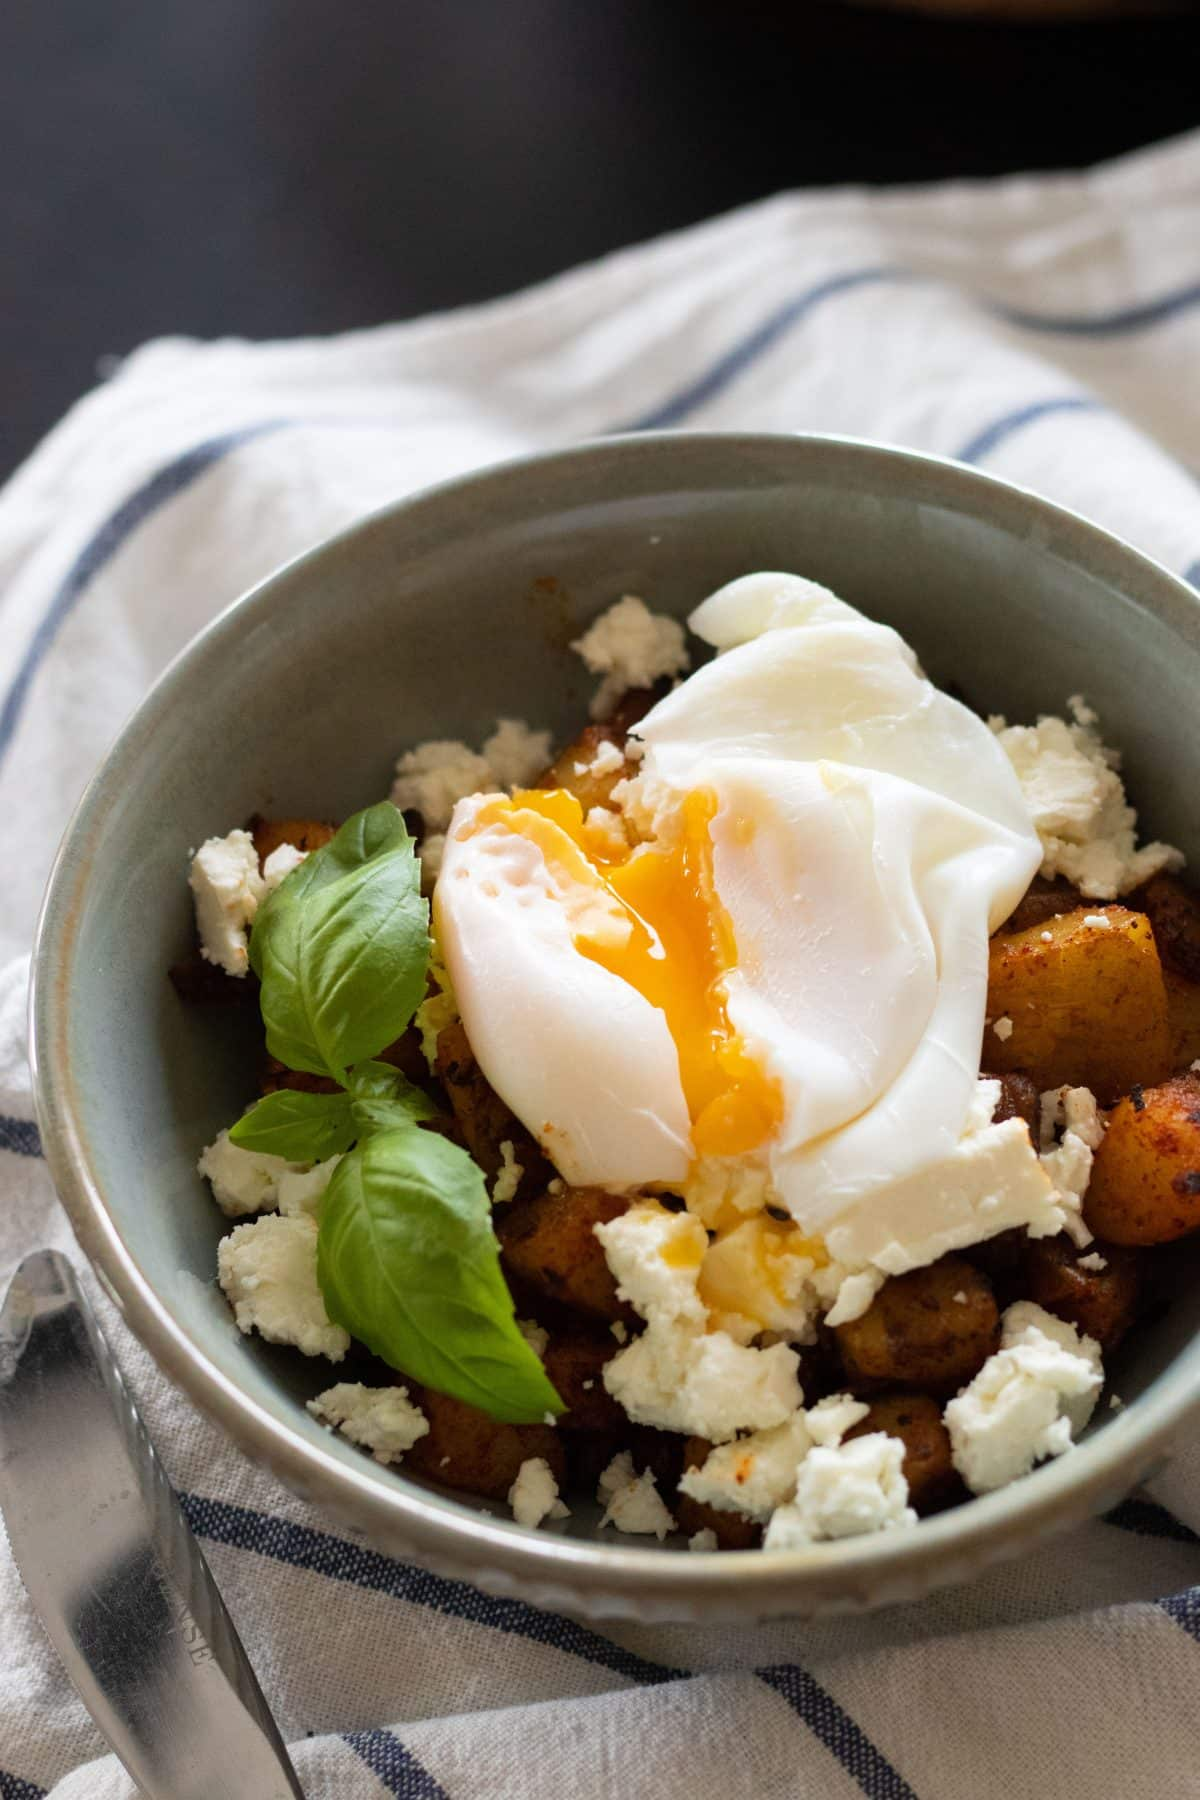 top view of a bowl of fried potatoes with feta cheese and a poached egg with the yolk running out